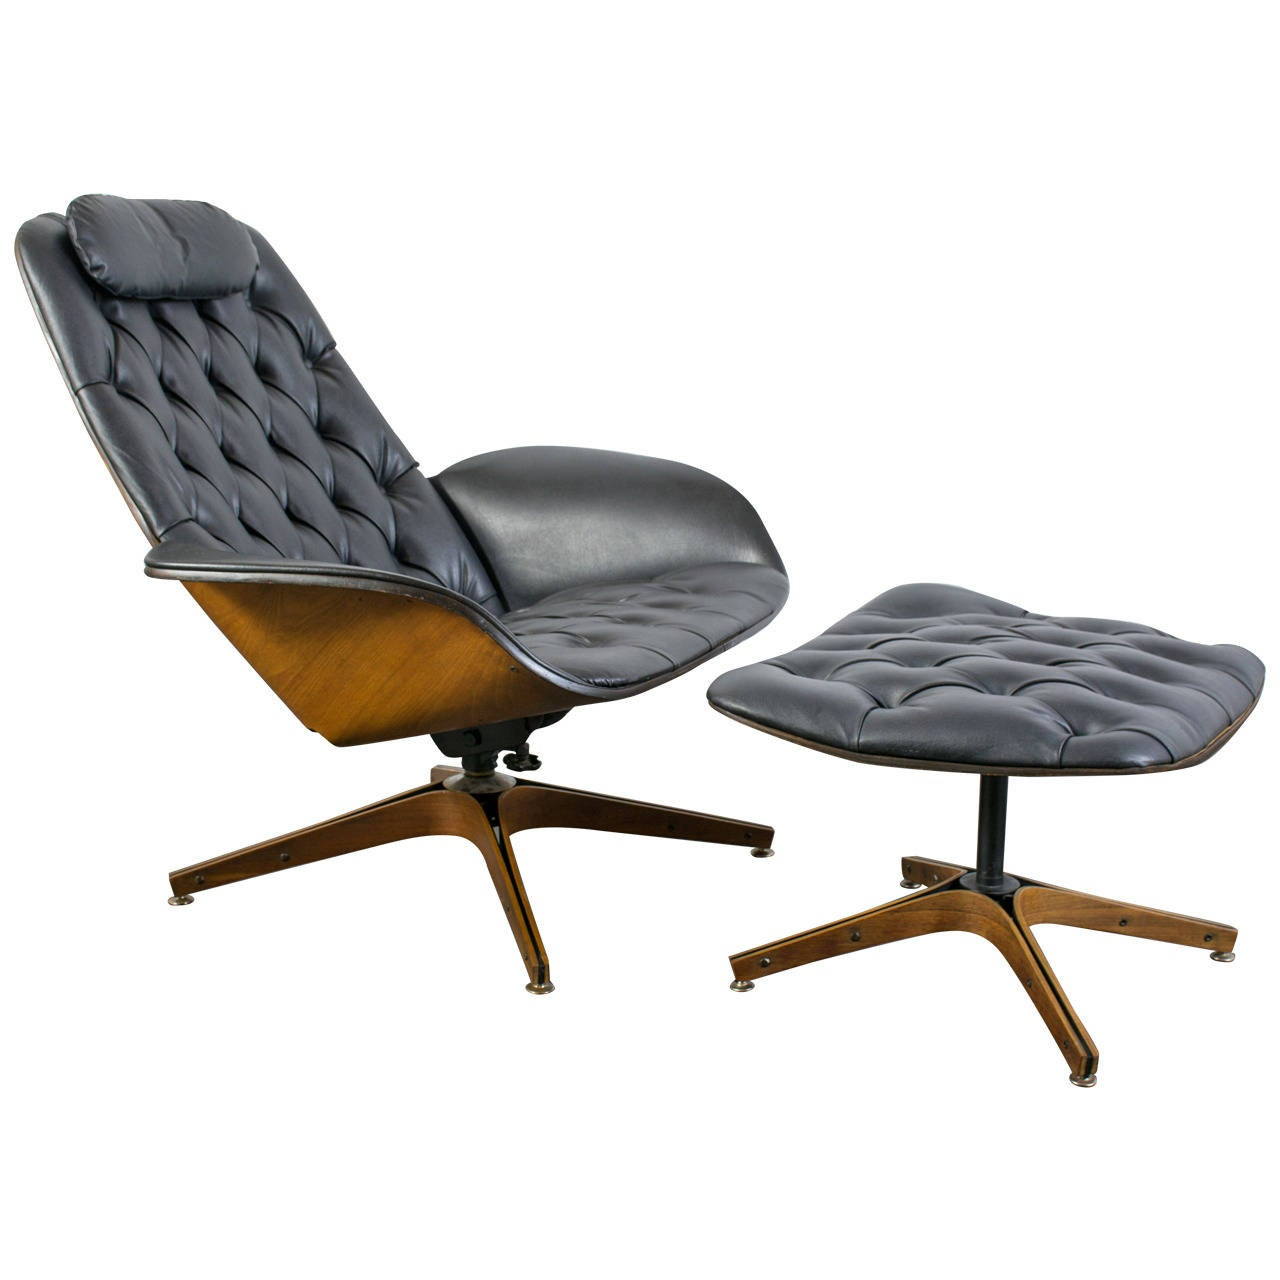 Mid Century Chair And Ottoman Mid Century Modern Lounge Chair And Ottoman By George